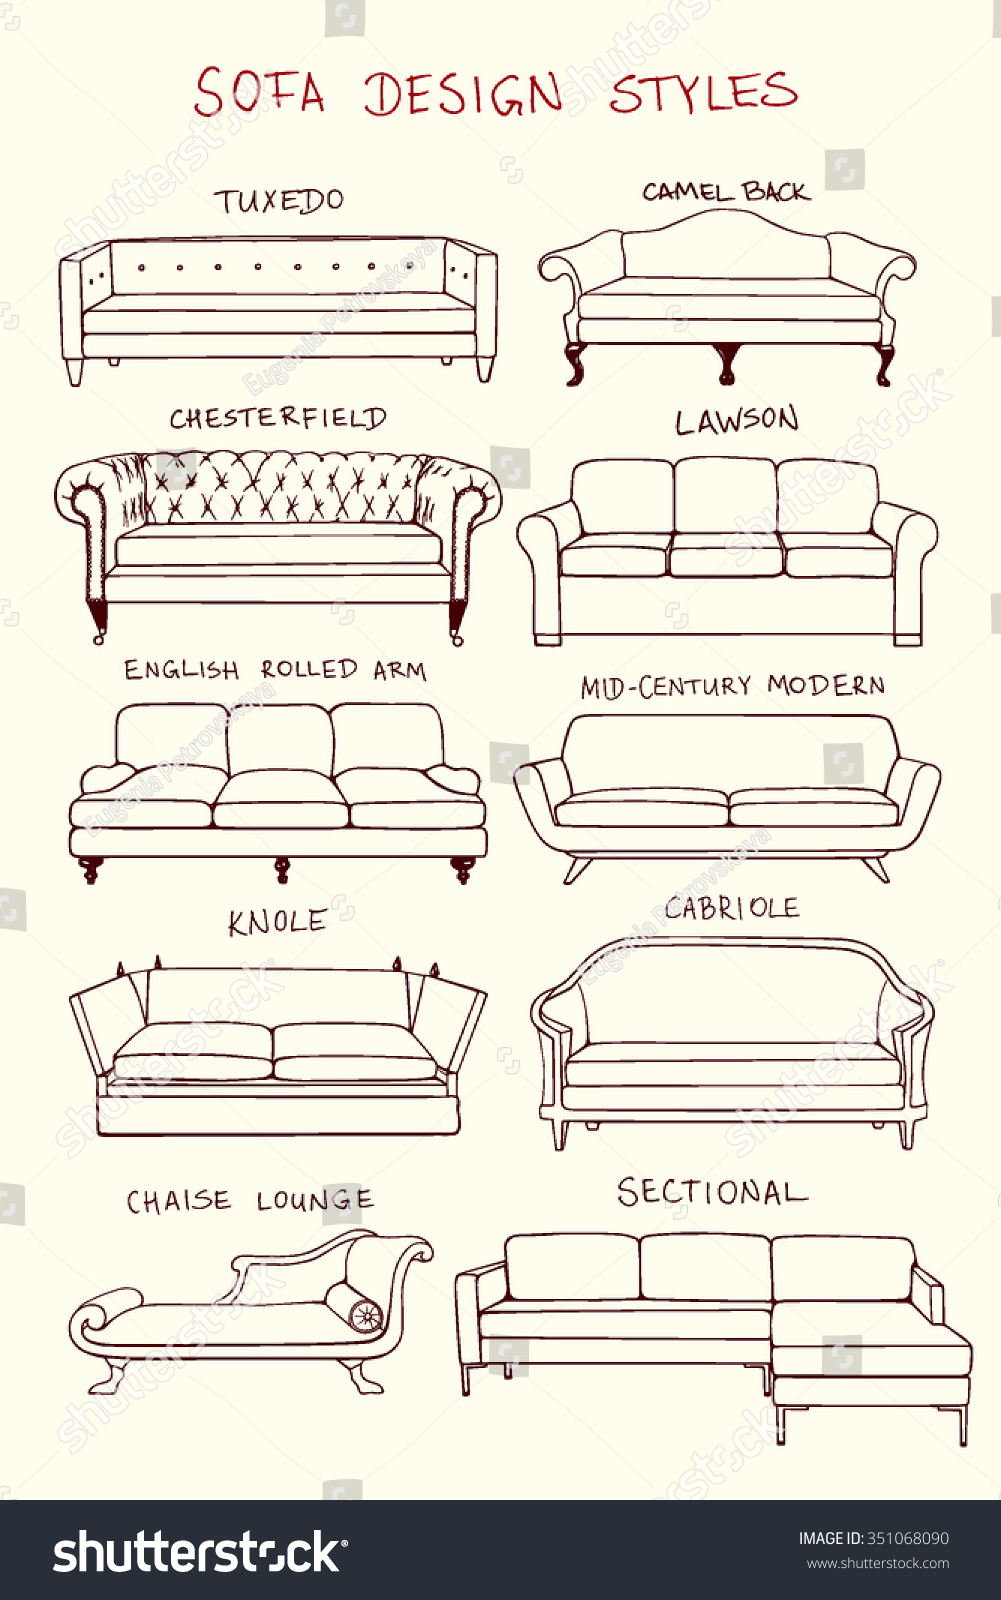 Vector Visual Guide Sofa Design Styles Stock Vector - Sofa design styles